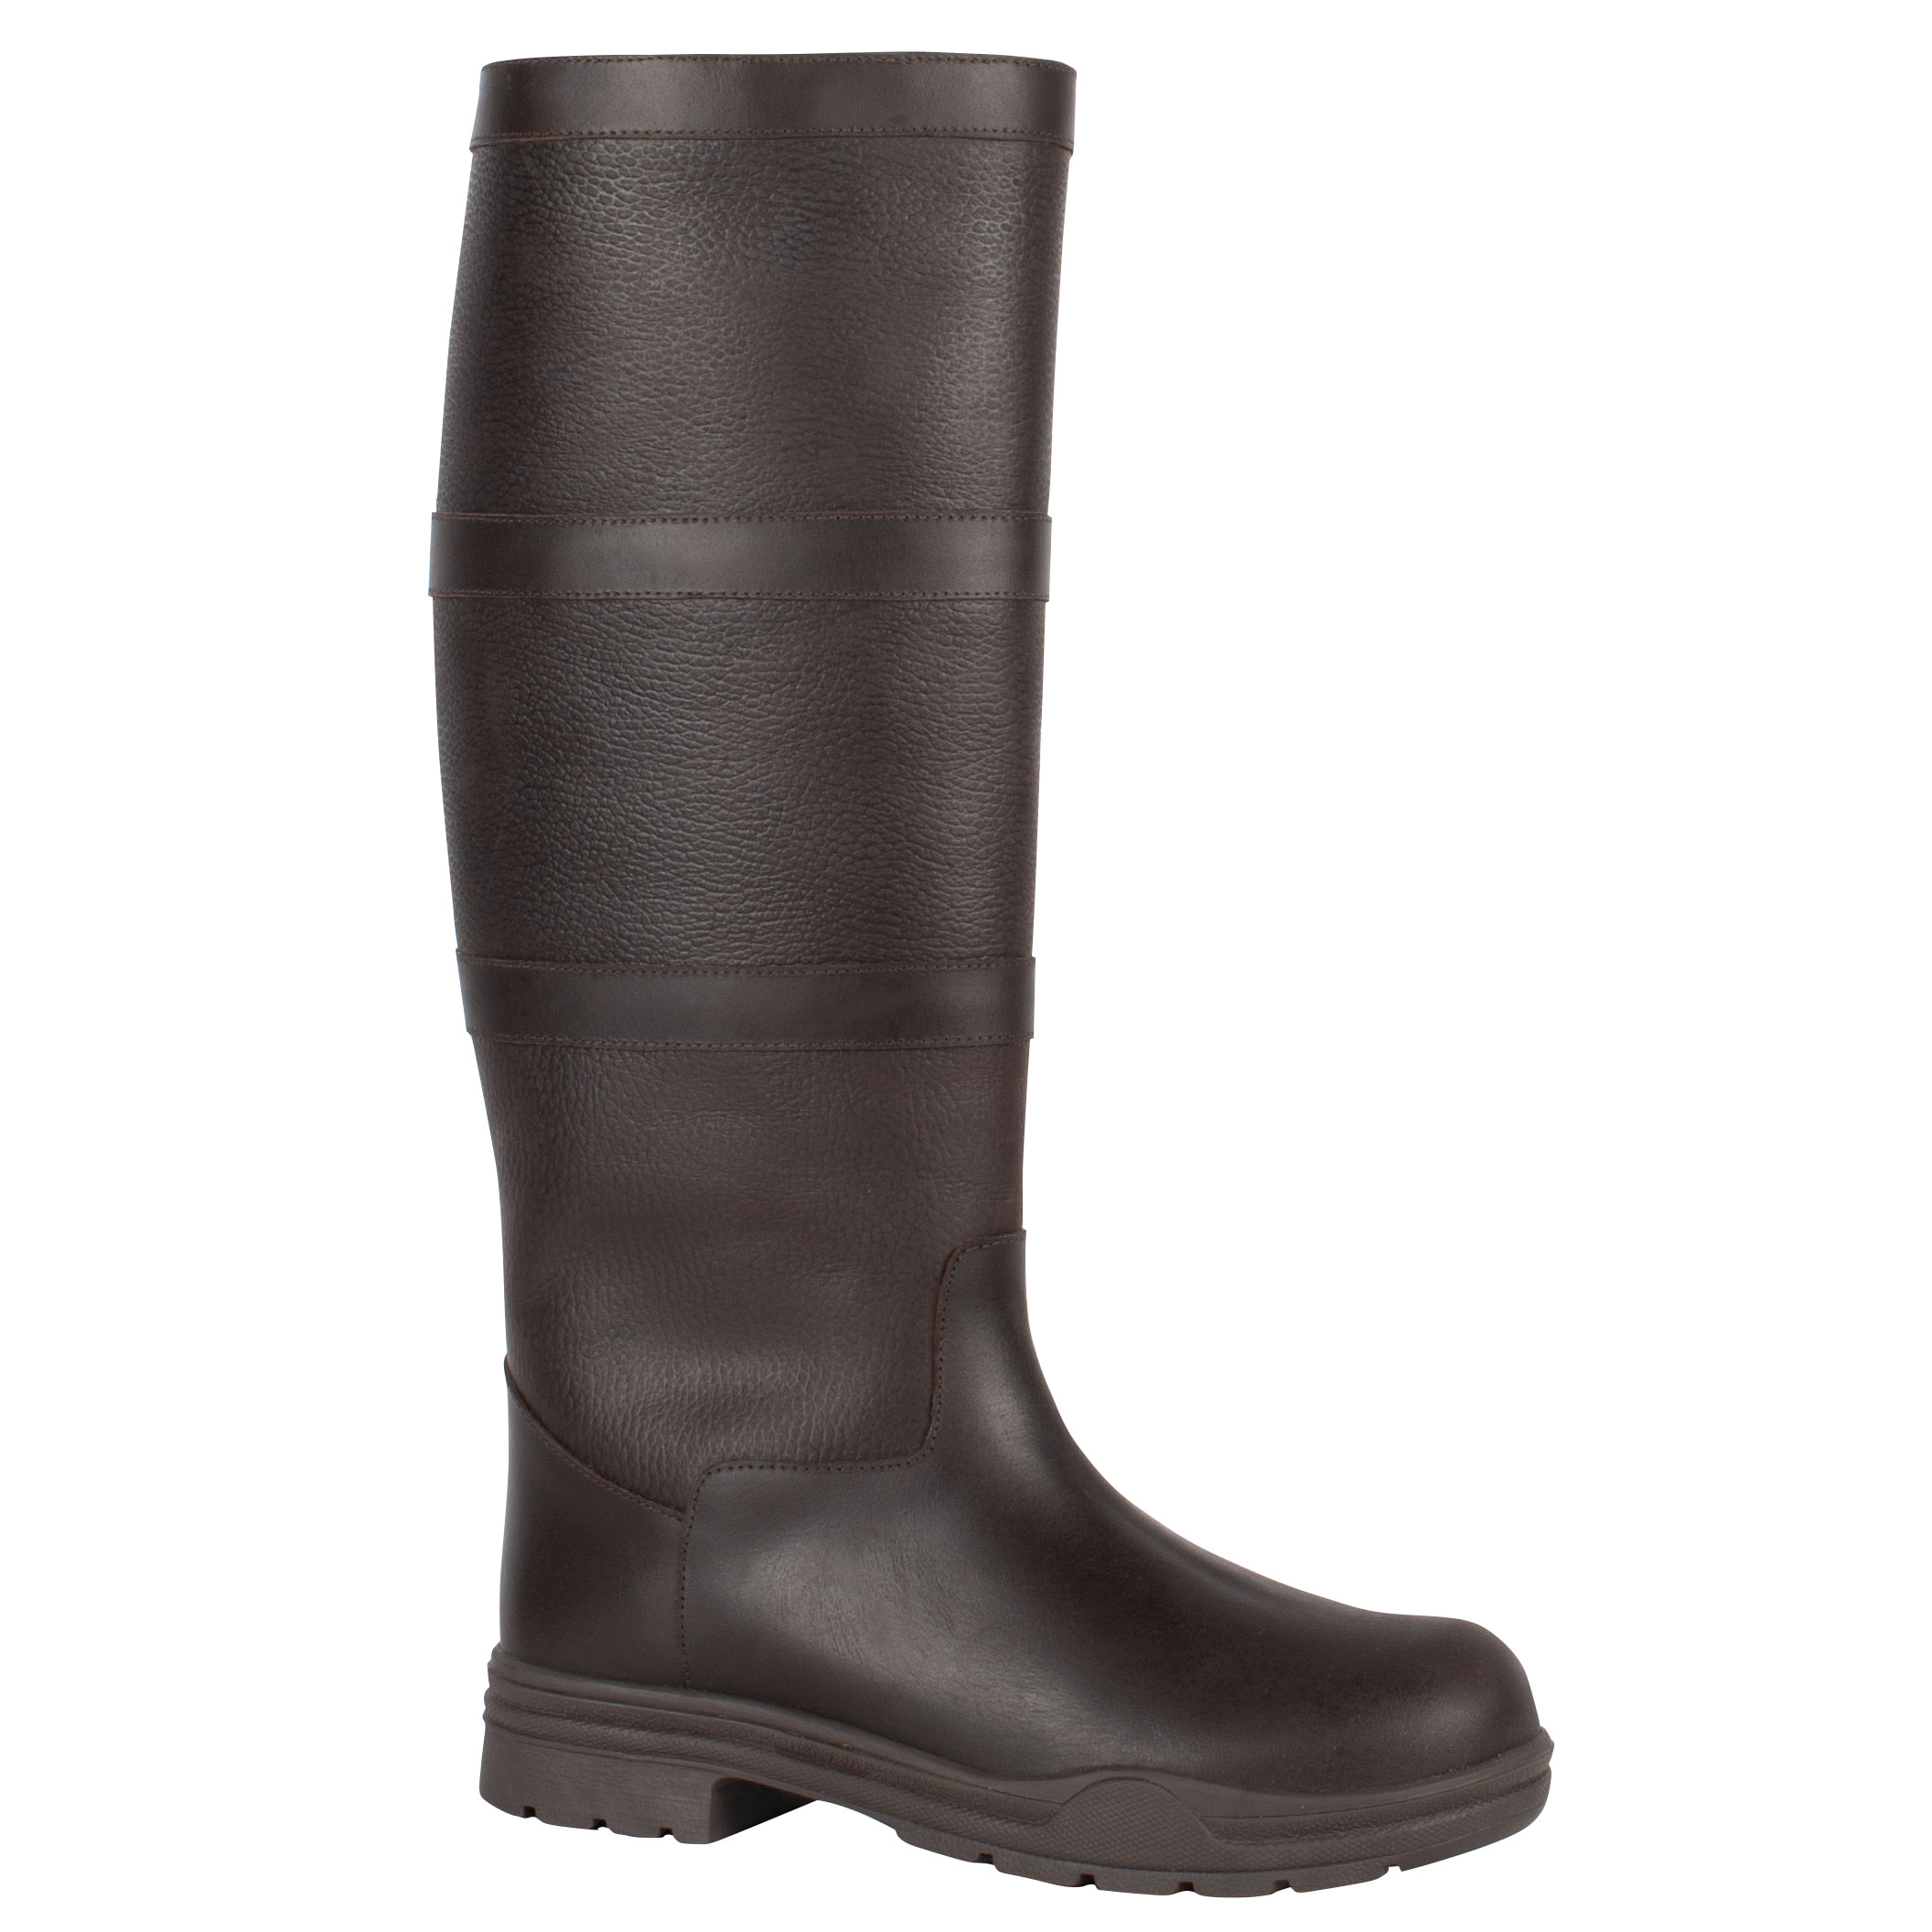 Mondoni Country Boots donkerbruin maat:42